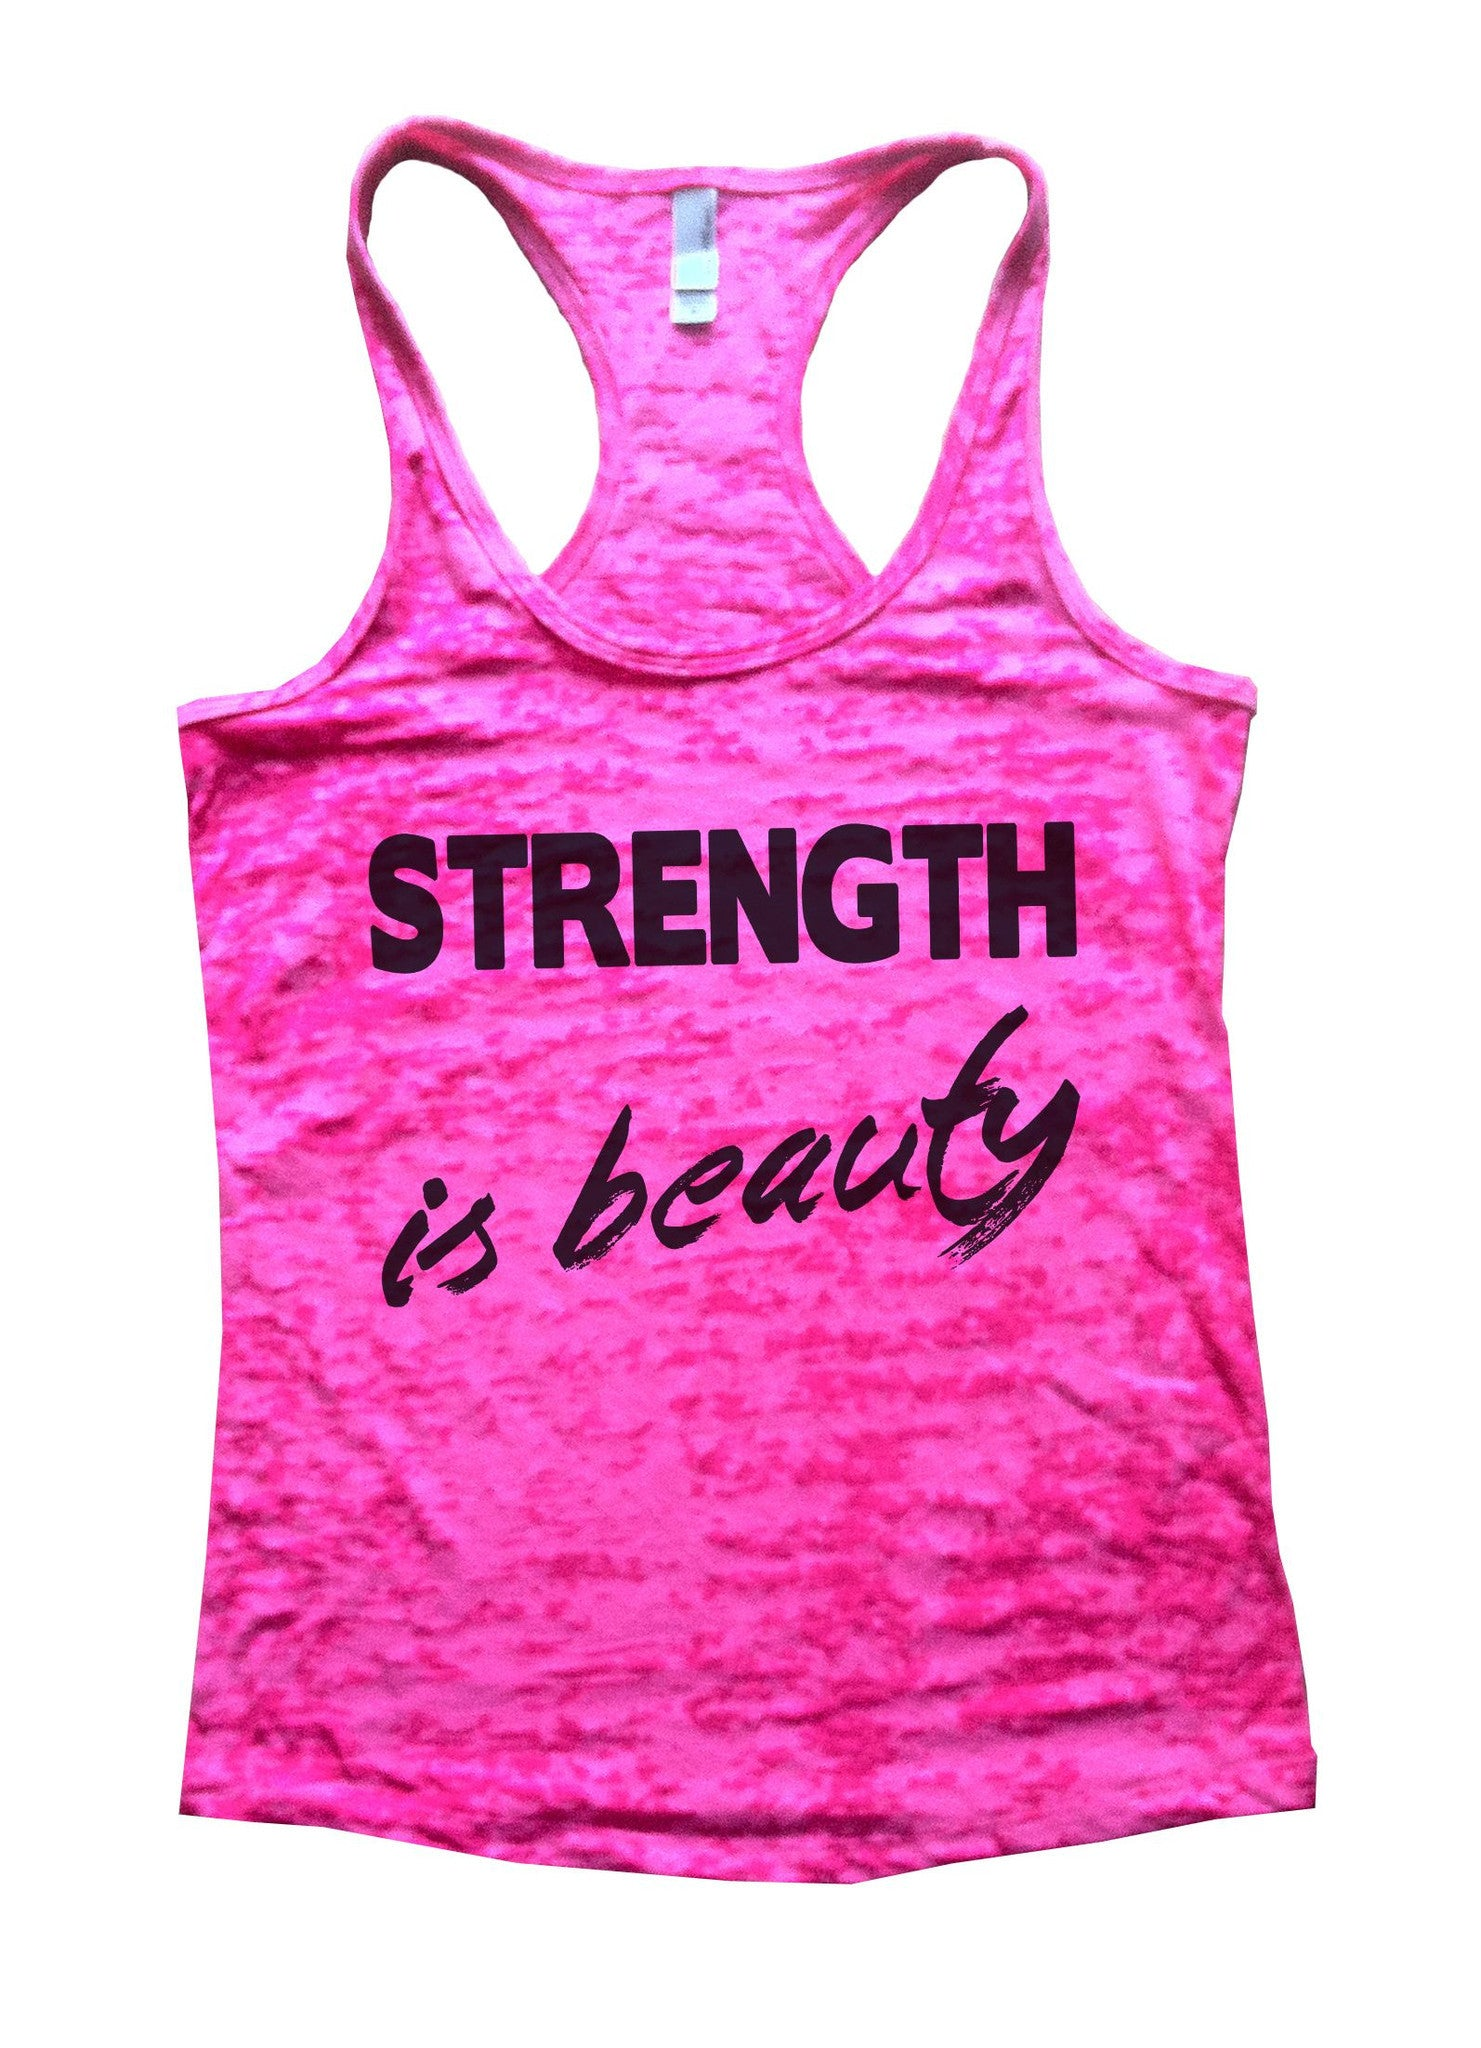 Strength Is Beauty Burnout Tank Top By BurnoutTankTops.com - 690 - Funny Shirts Tank Tops Burnouts and Triblends  - 3